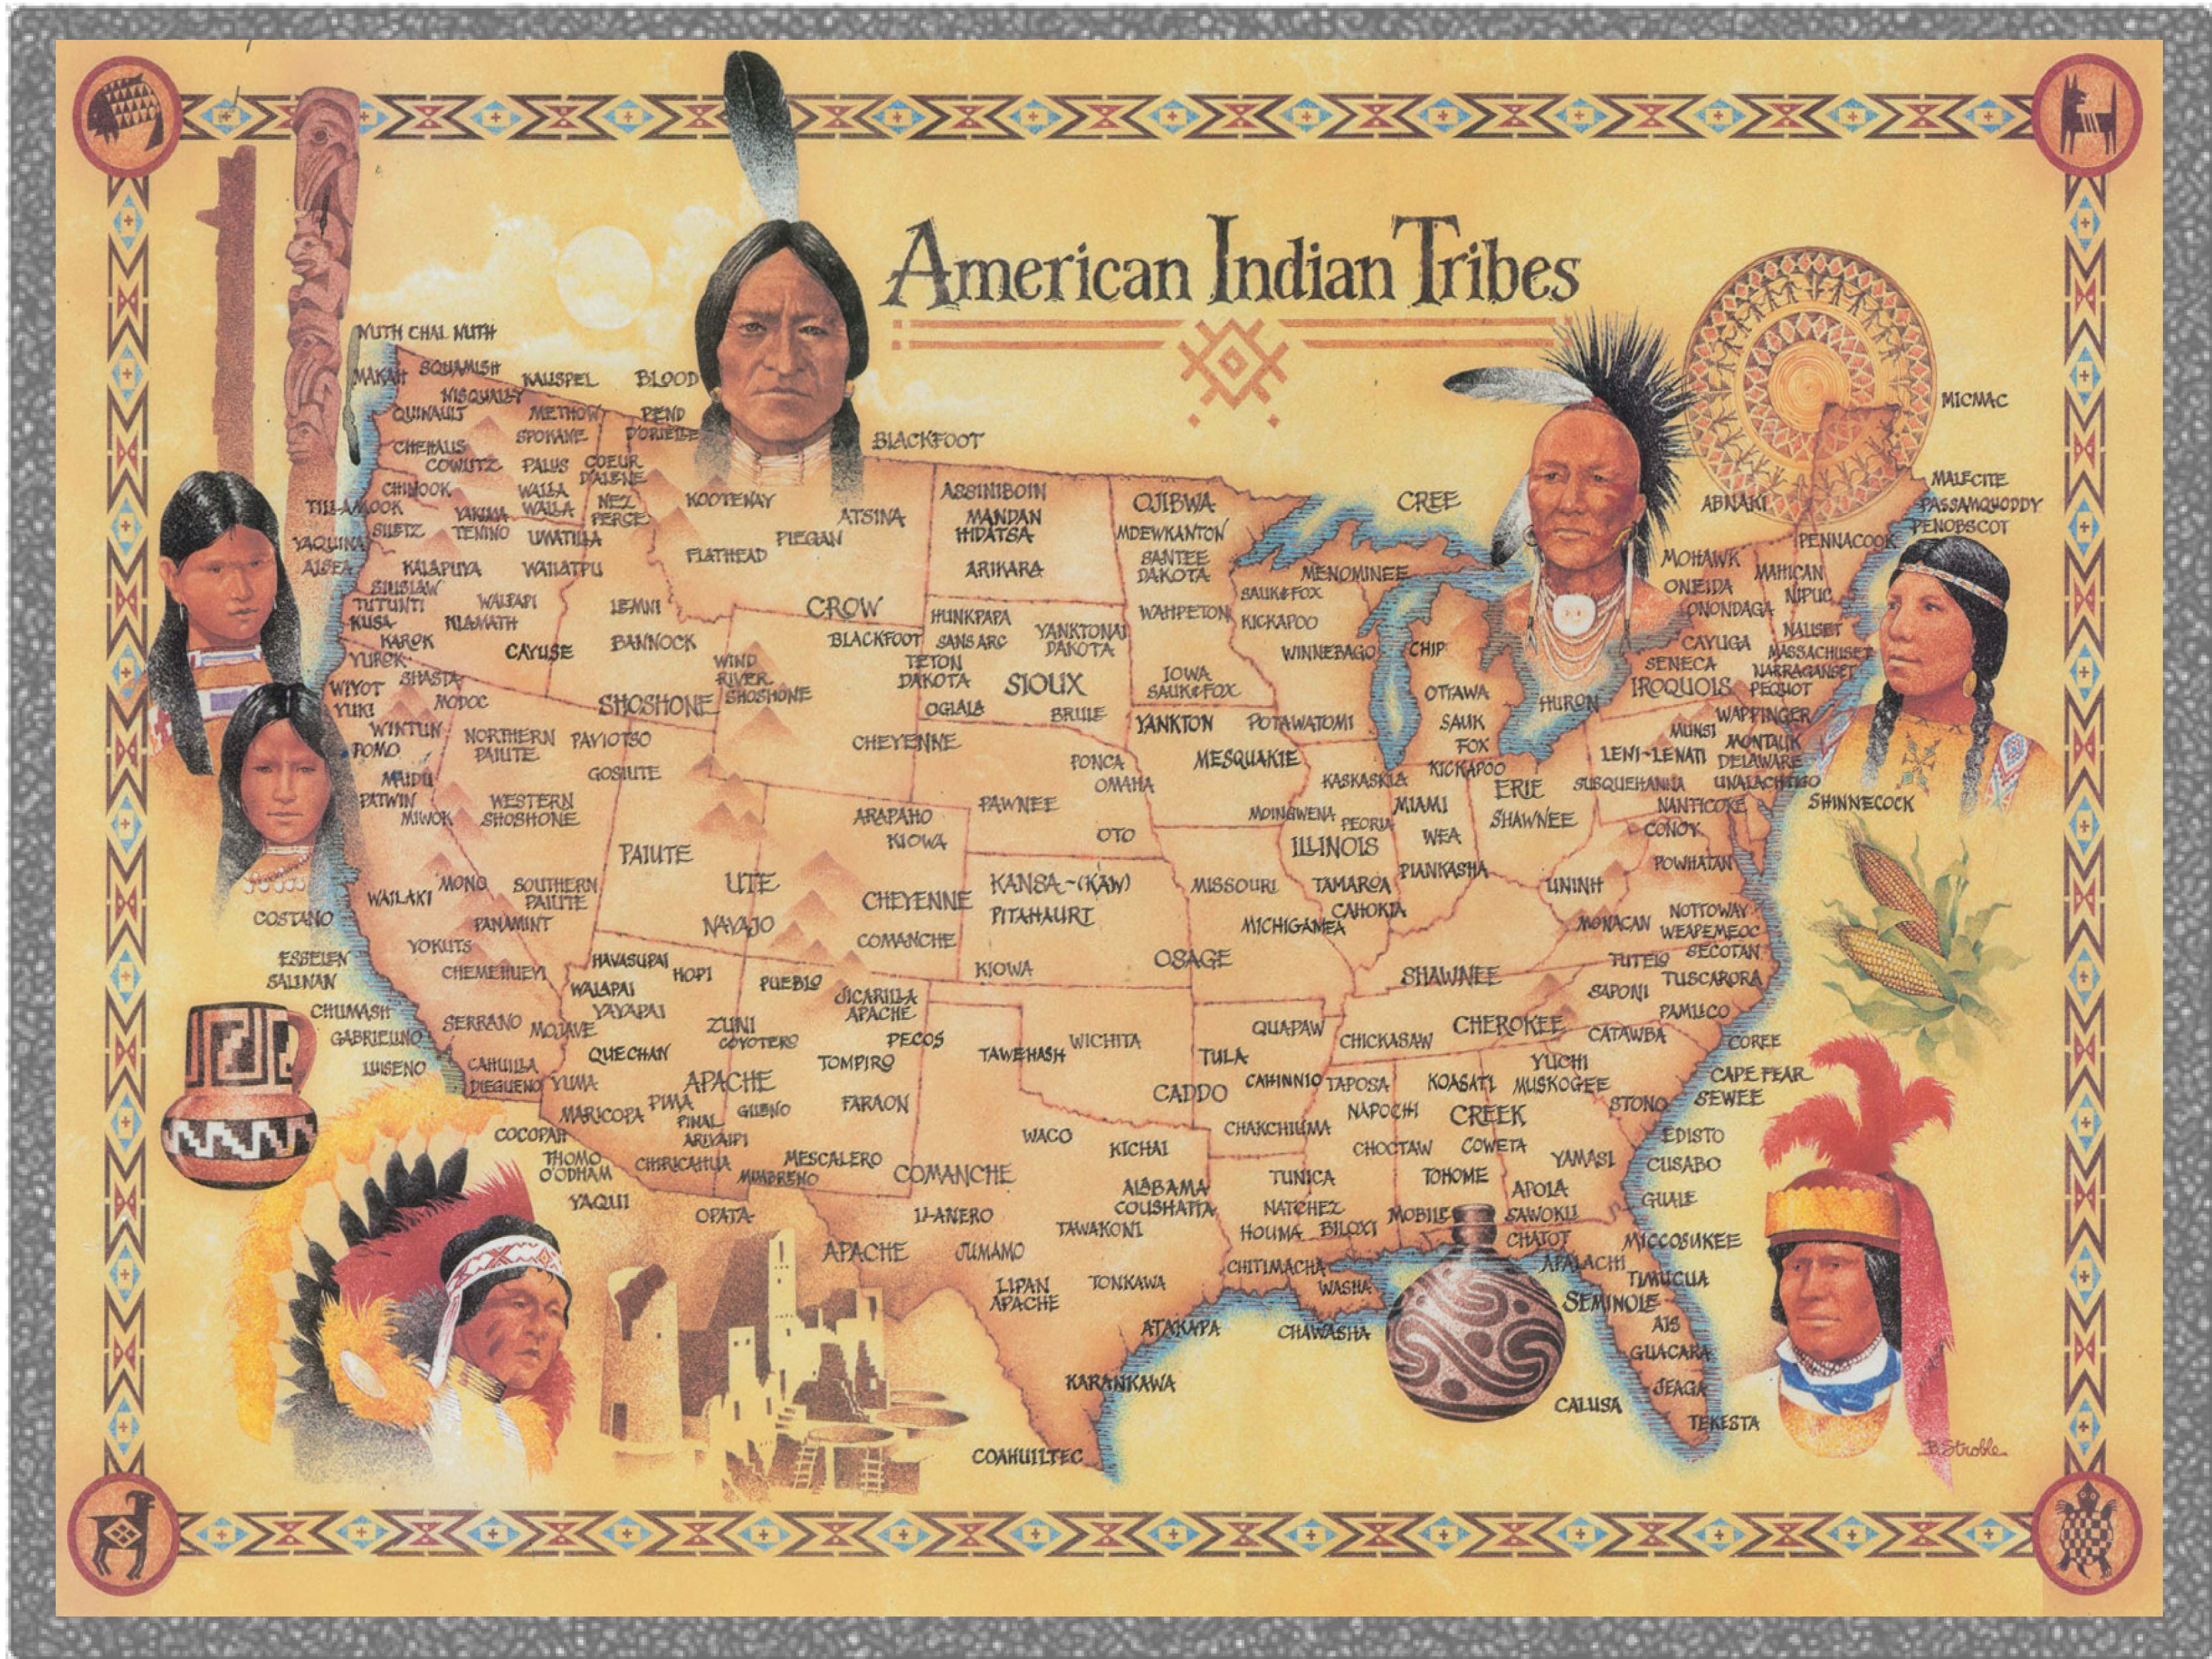 Native American Treatment in the US